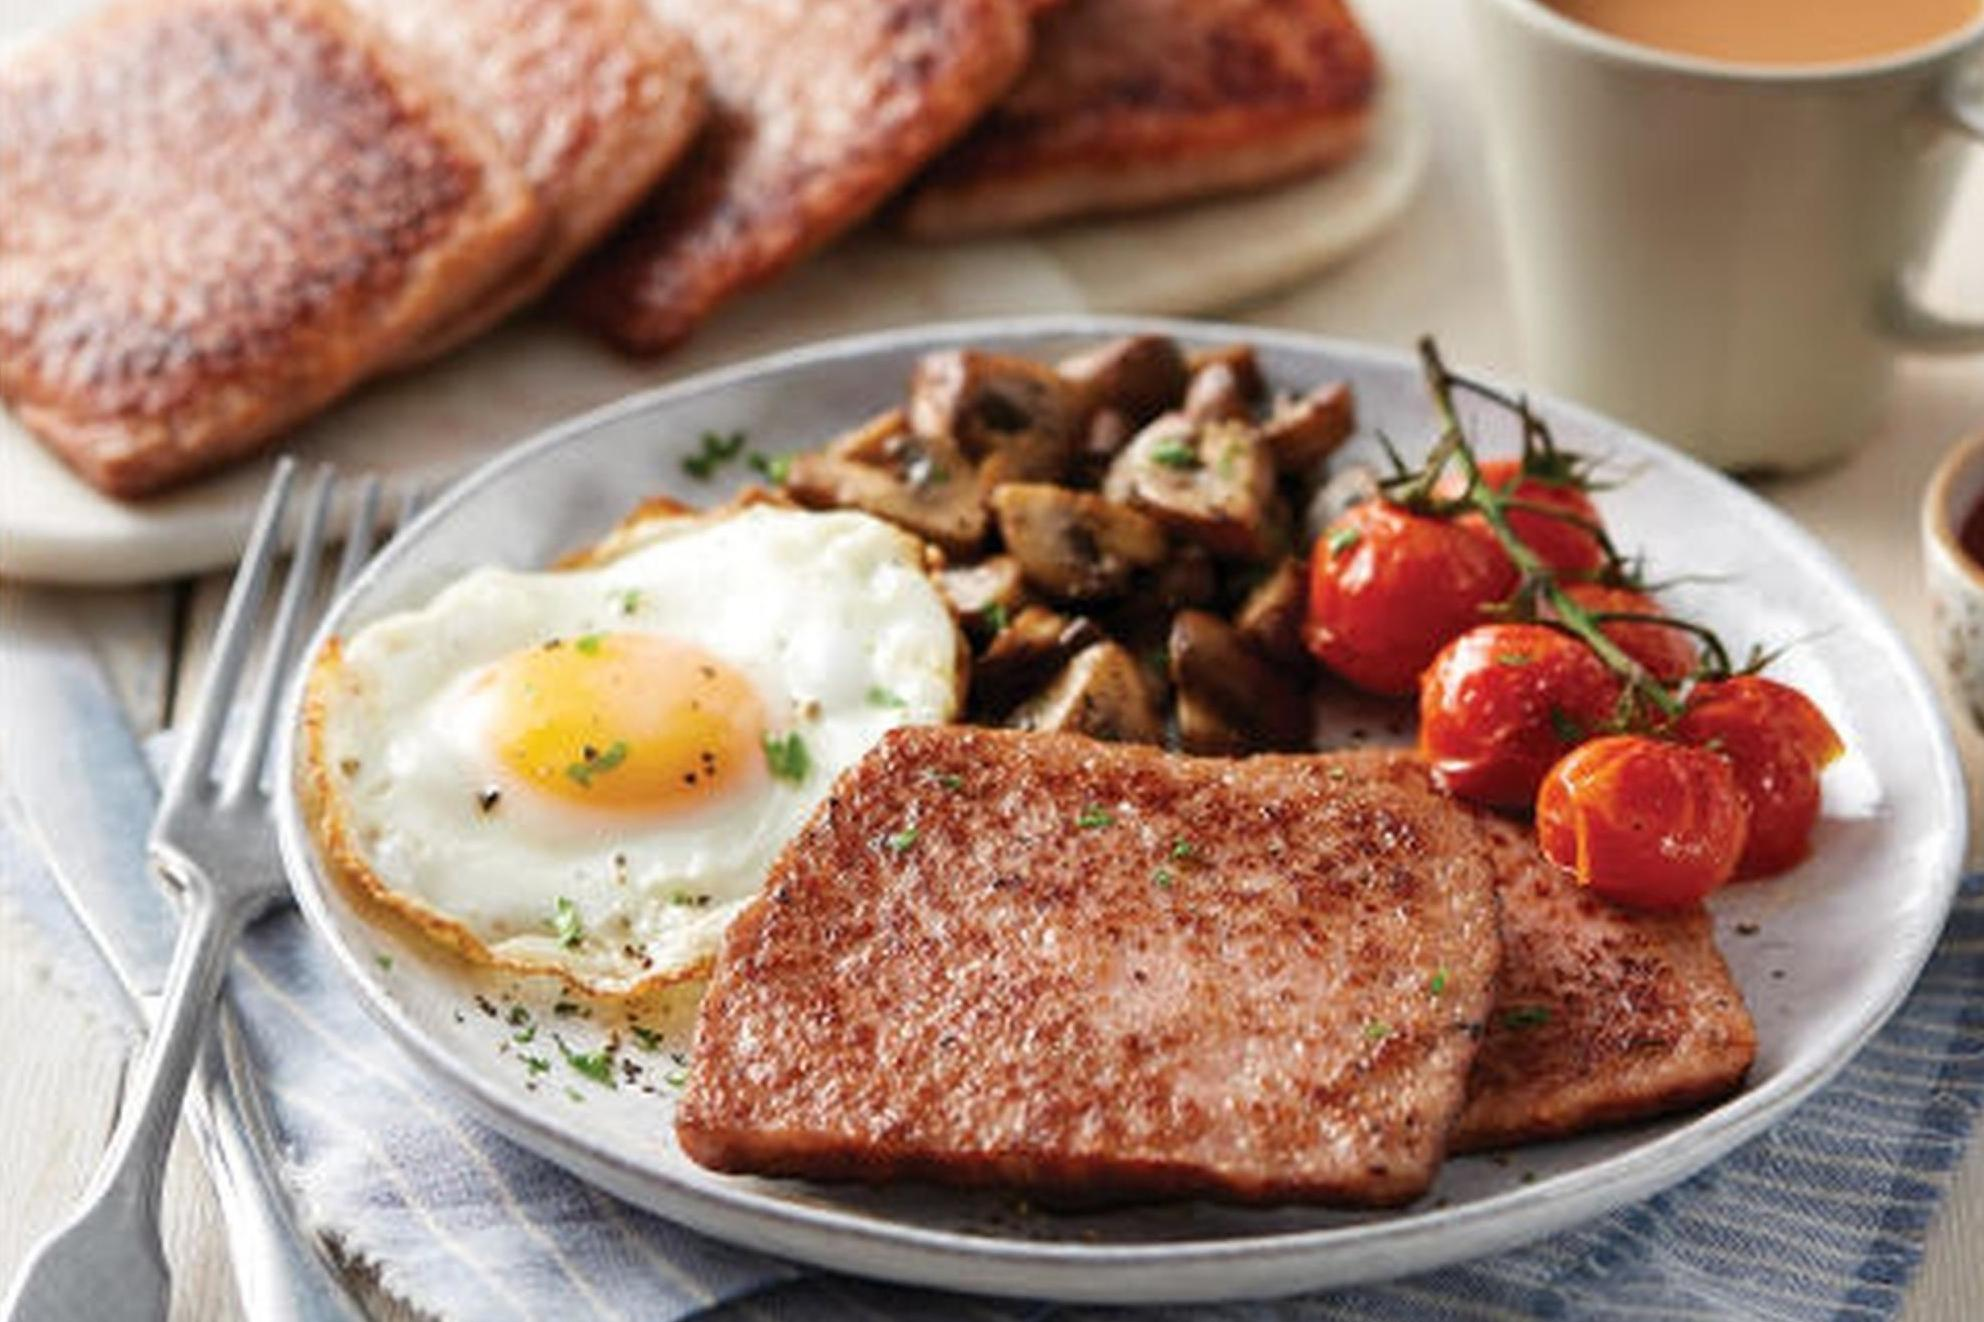 Aldi's square sausage sparks 'cultural appropriation' outrage on social media among Scots 1